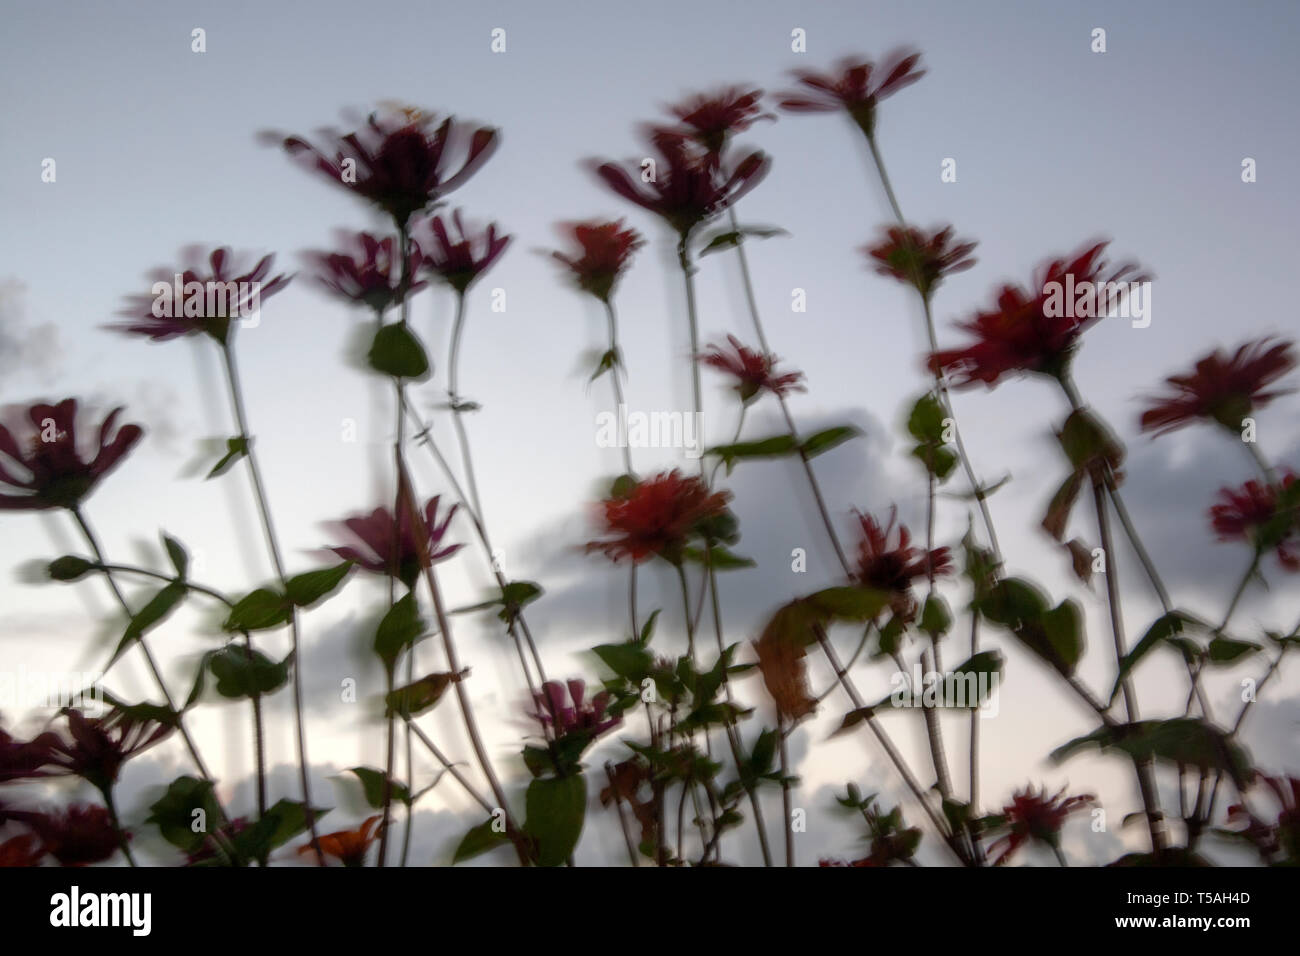 Flower Stems Silhouette Blurred - Stock Image